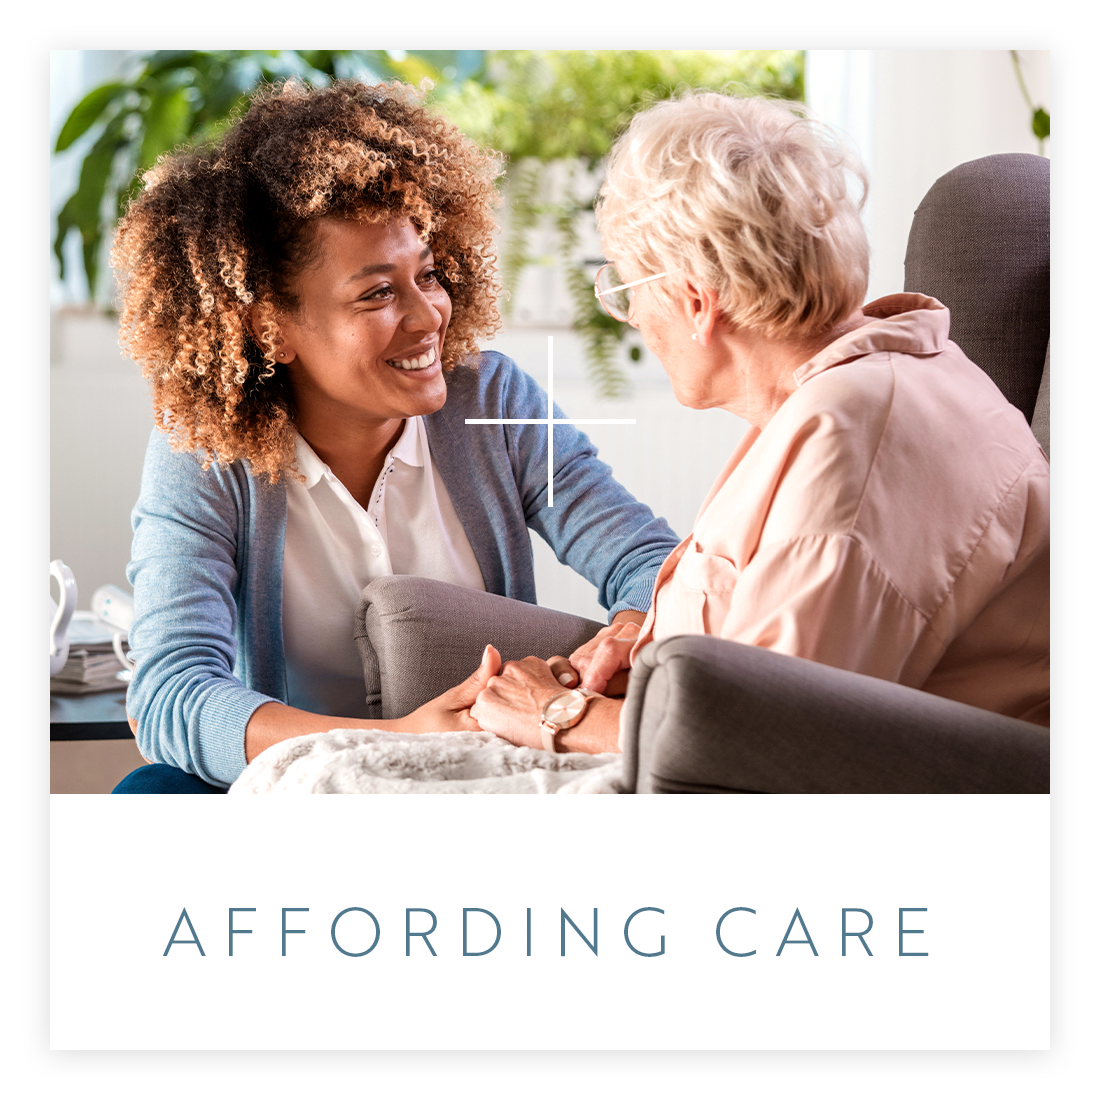 Learn about affording care at Cypress Place in Ventura, California